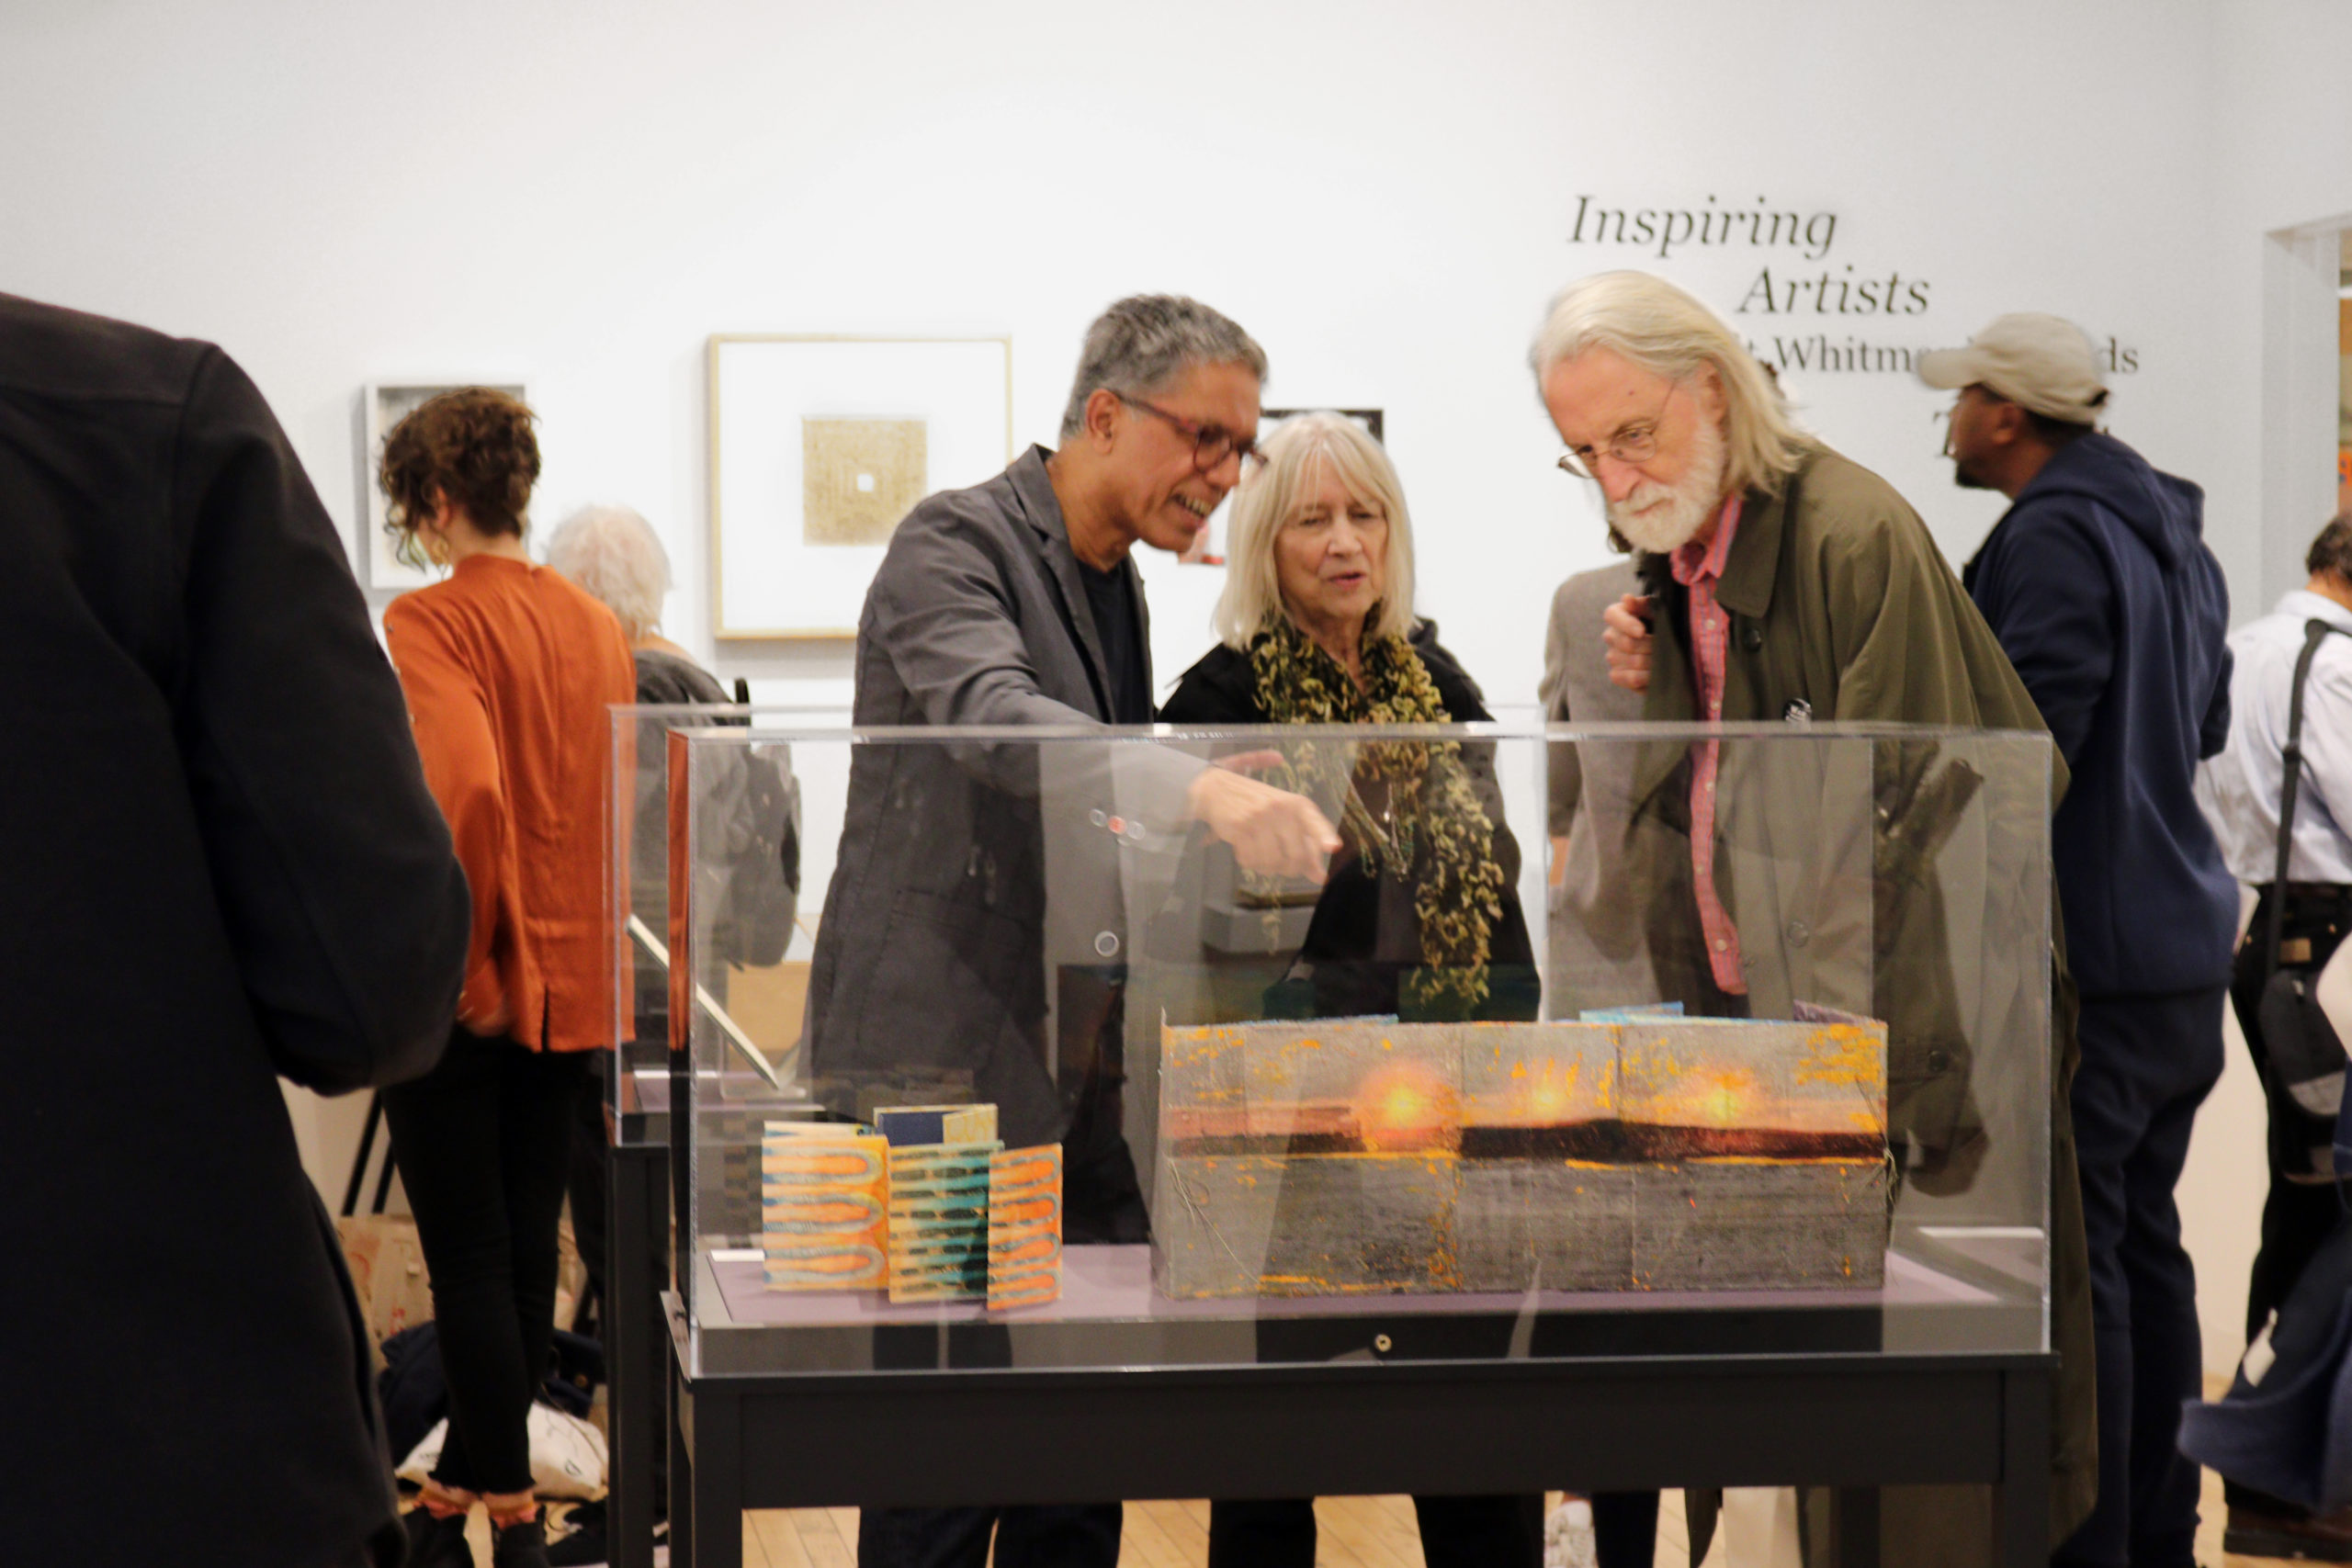 three people gather around an artwork at the center of the gallery